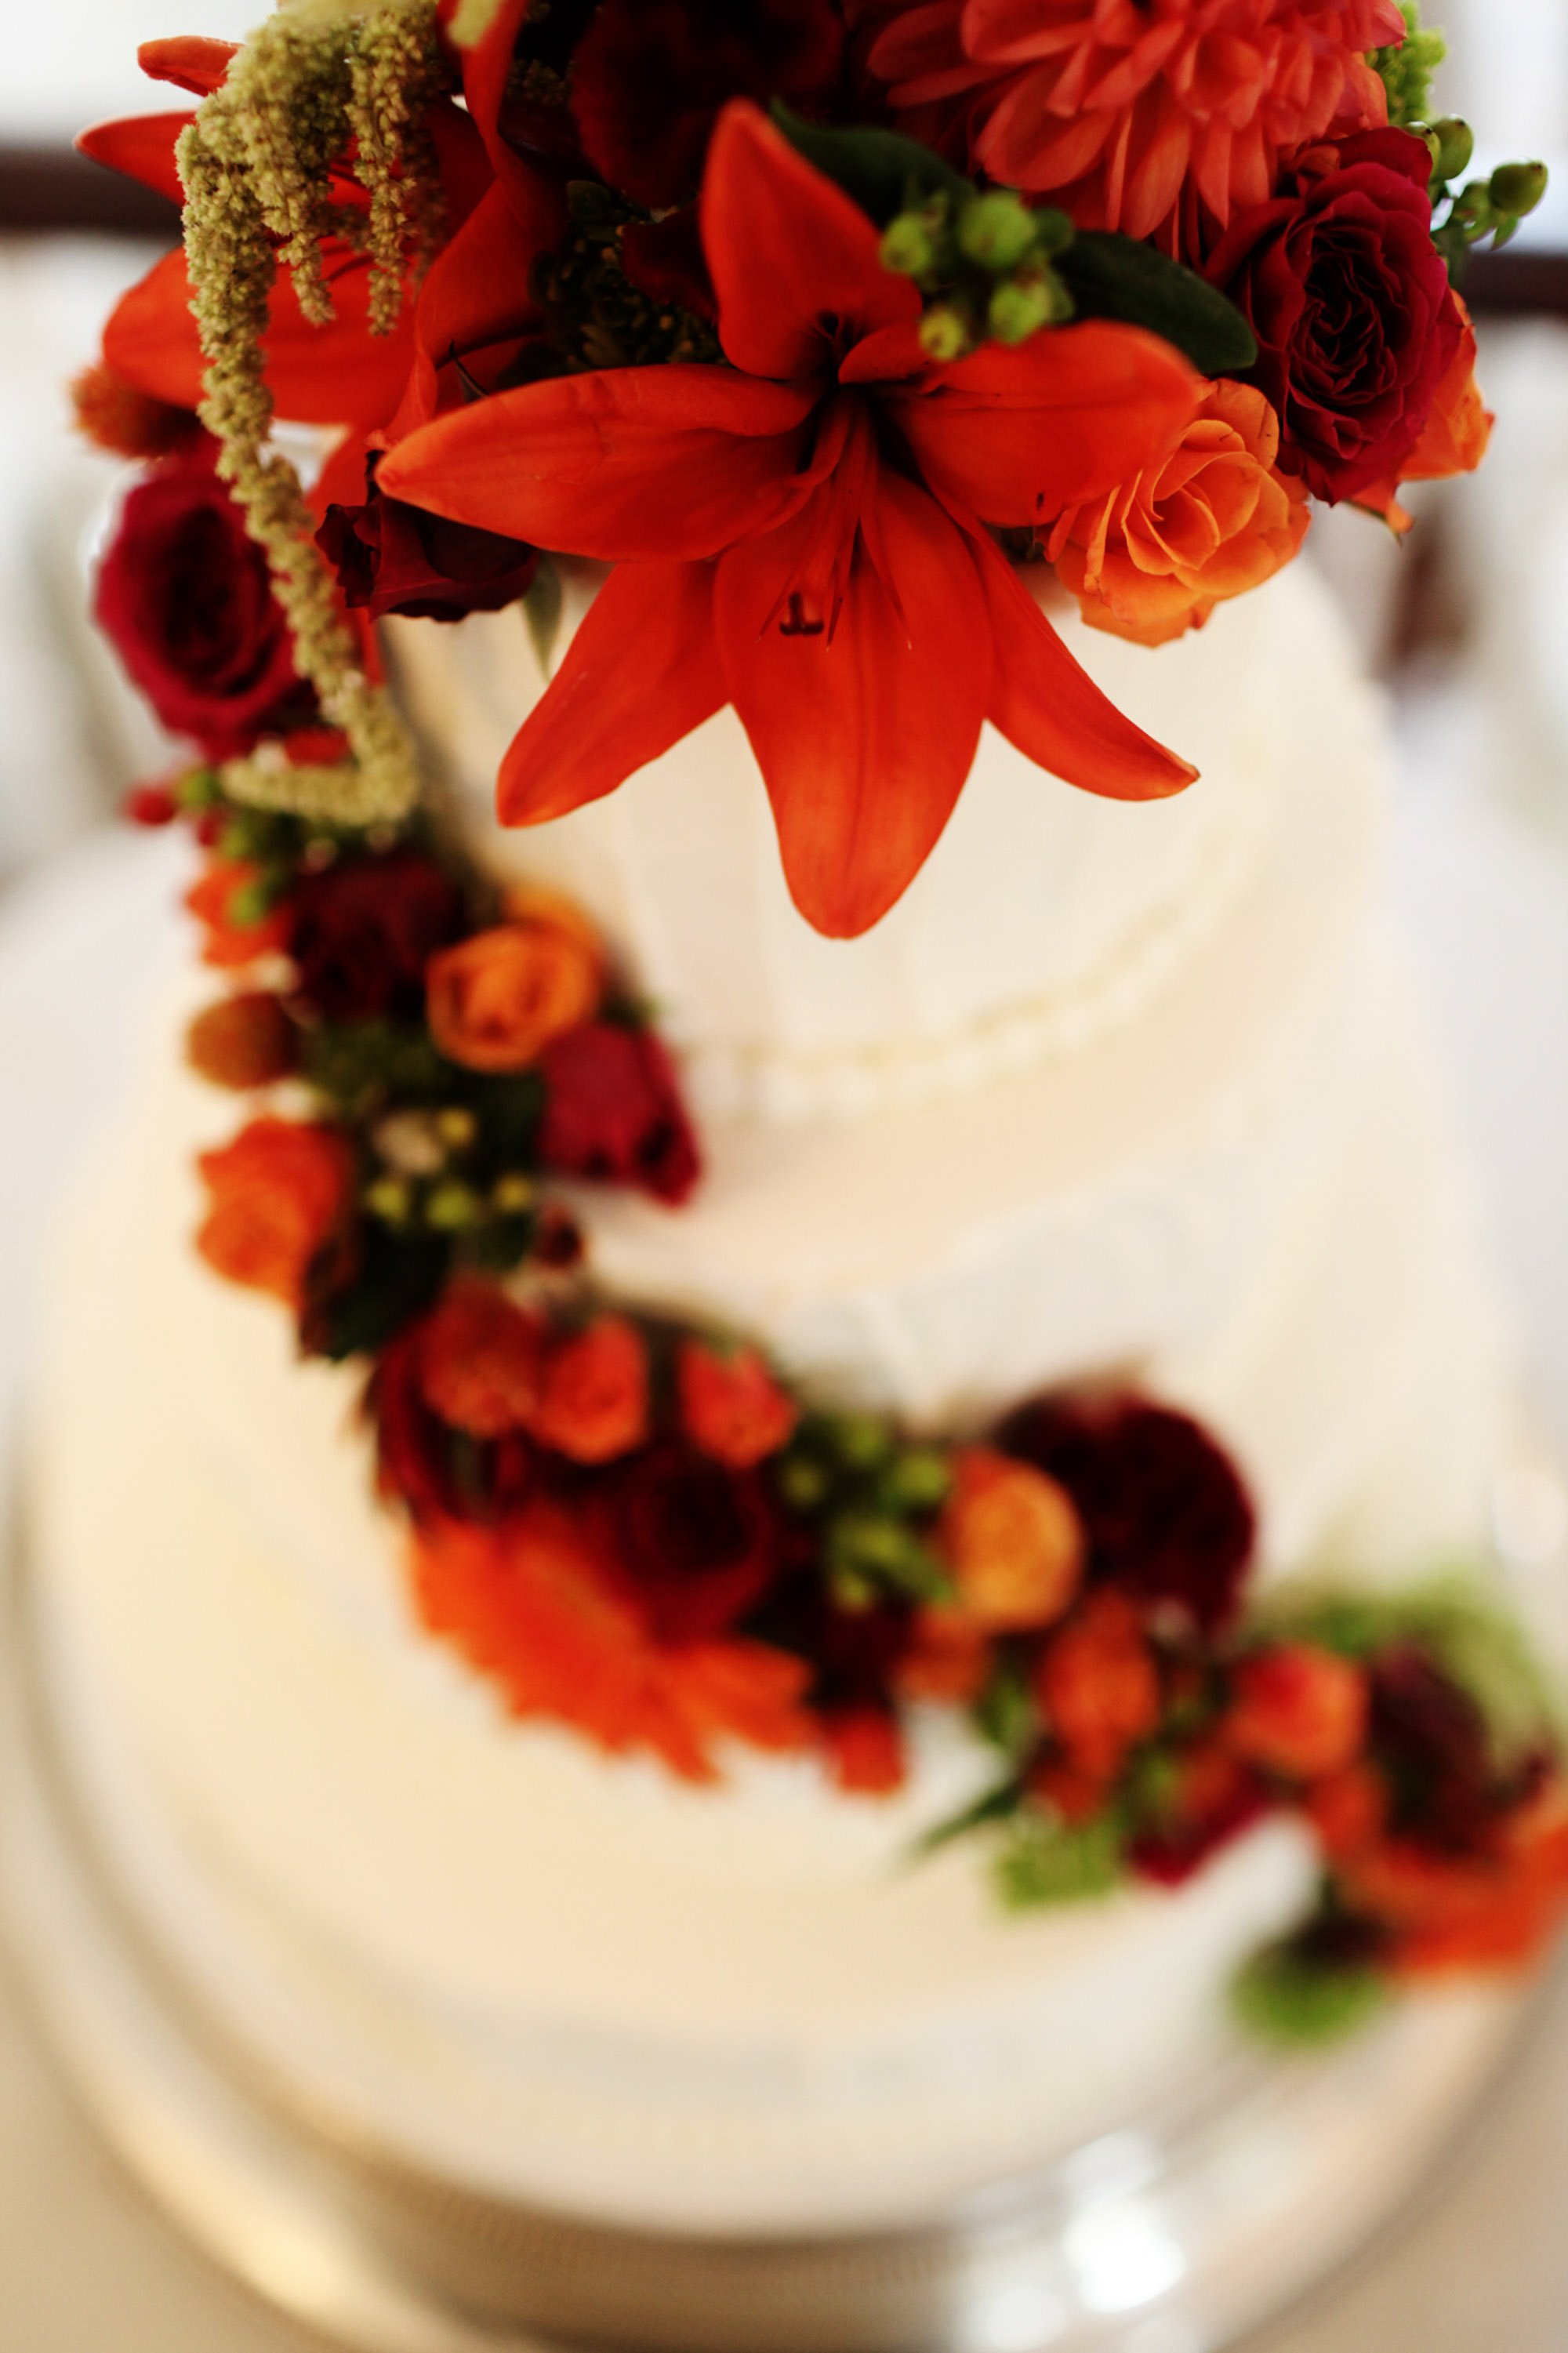 A detail of the wedding cake during this Whitehall Estate wedding.